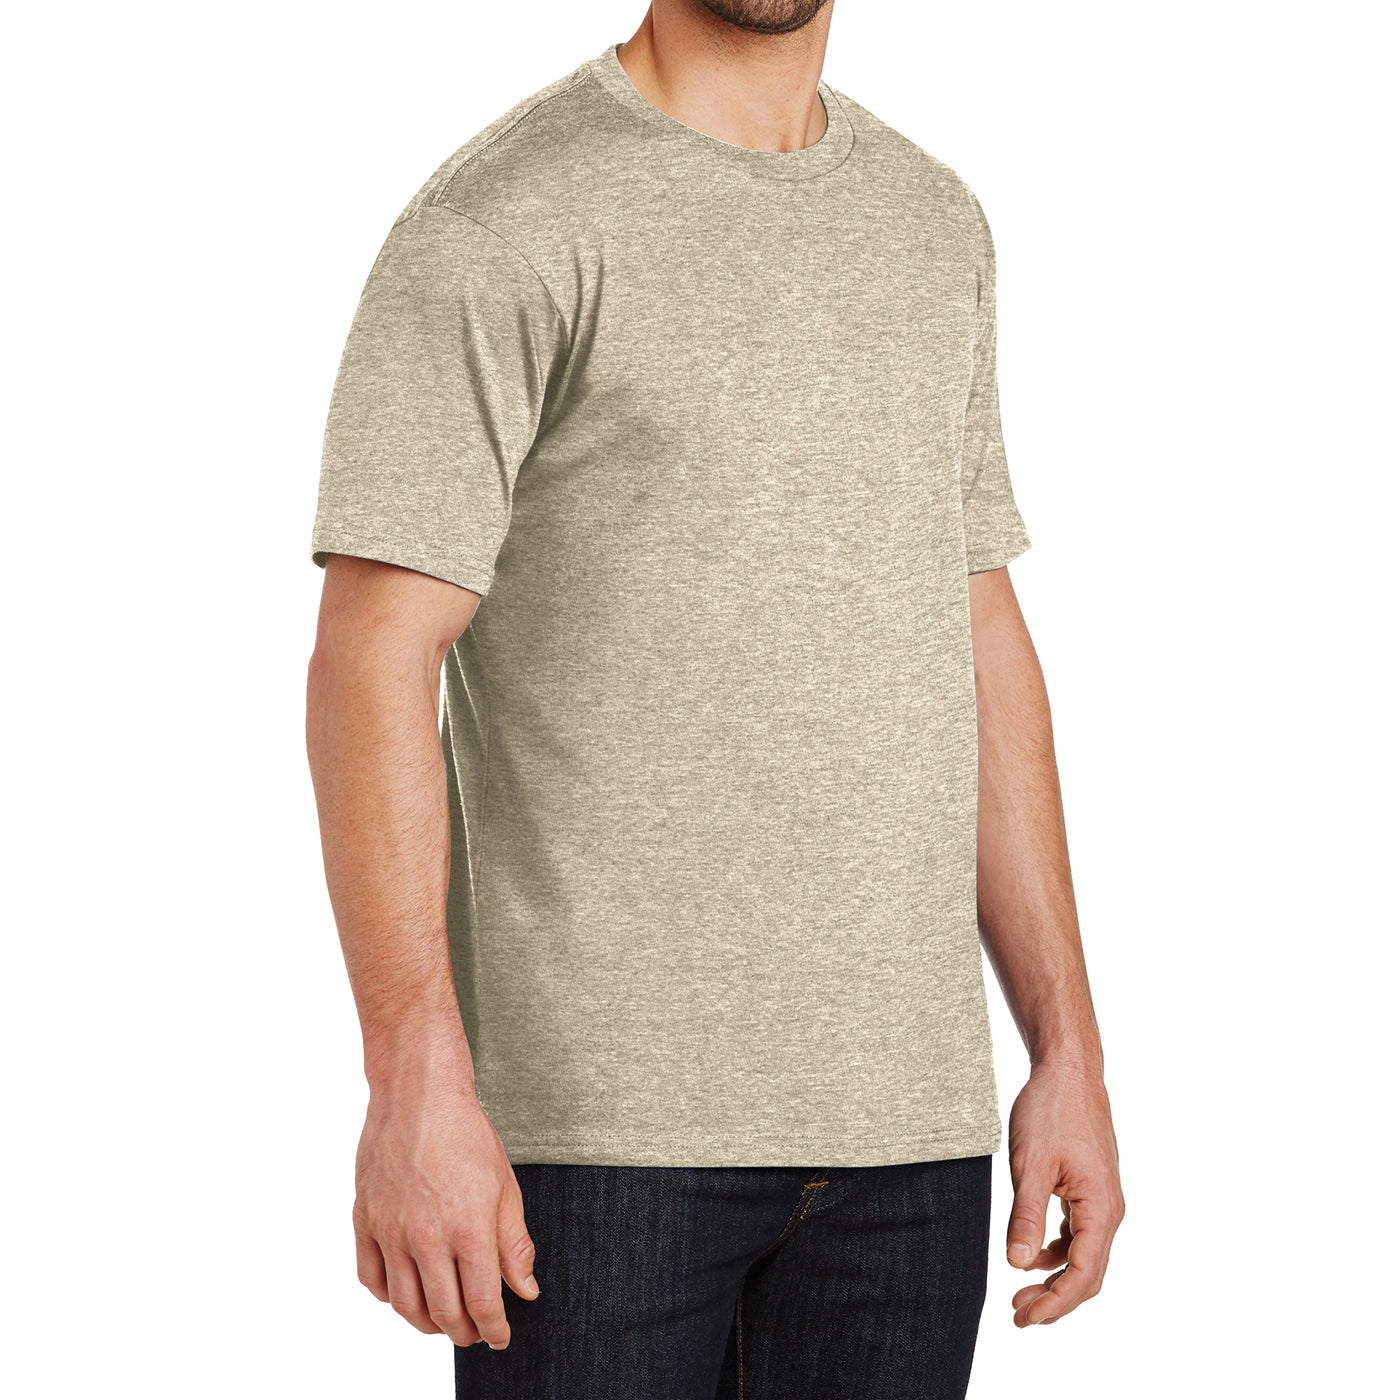 Mens Perfect Weight Crew Tee - Heathered Latte - Side